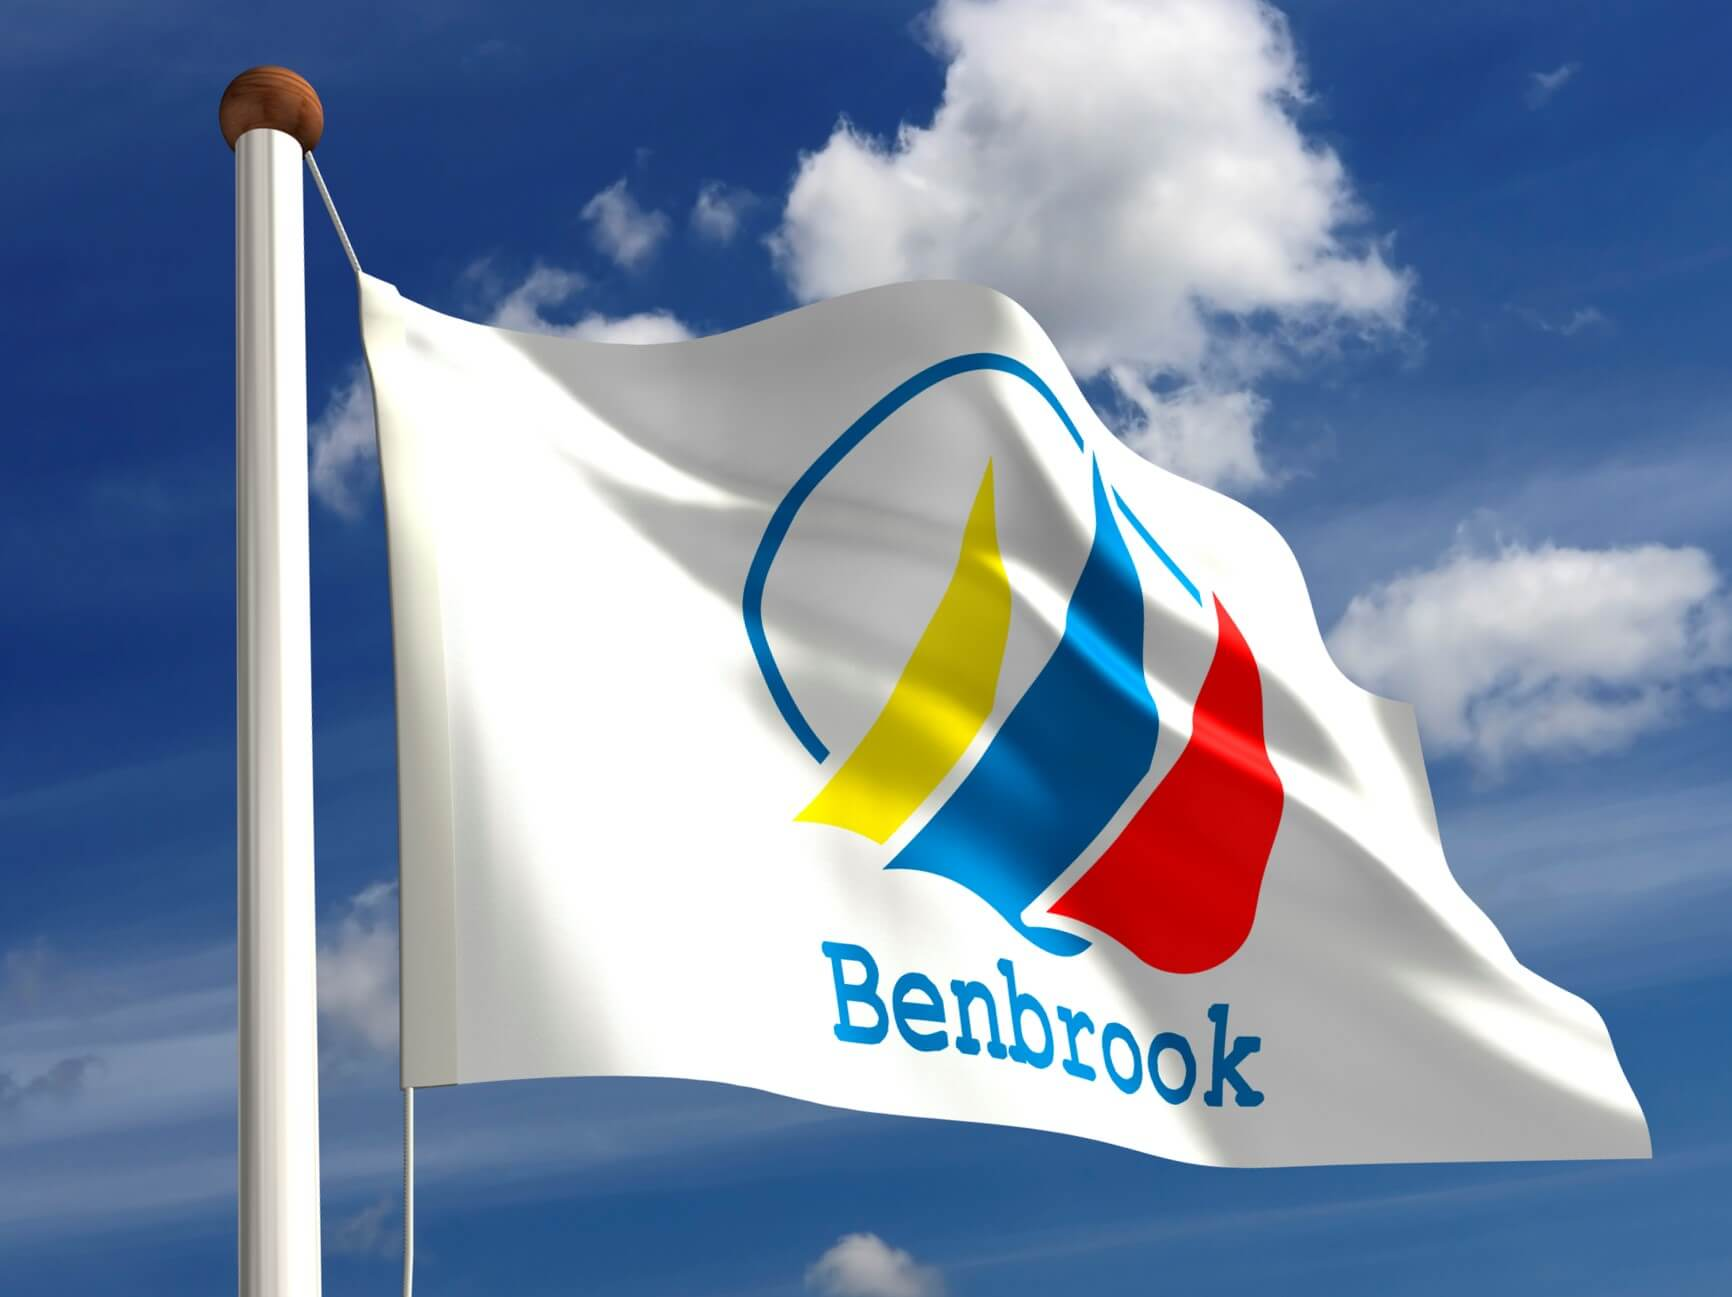 Benbrook City flag (isolated with clipping path)